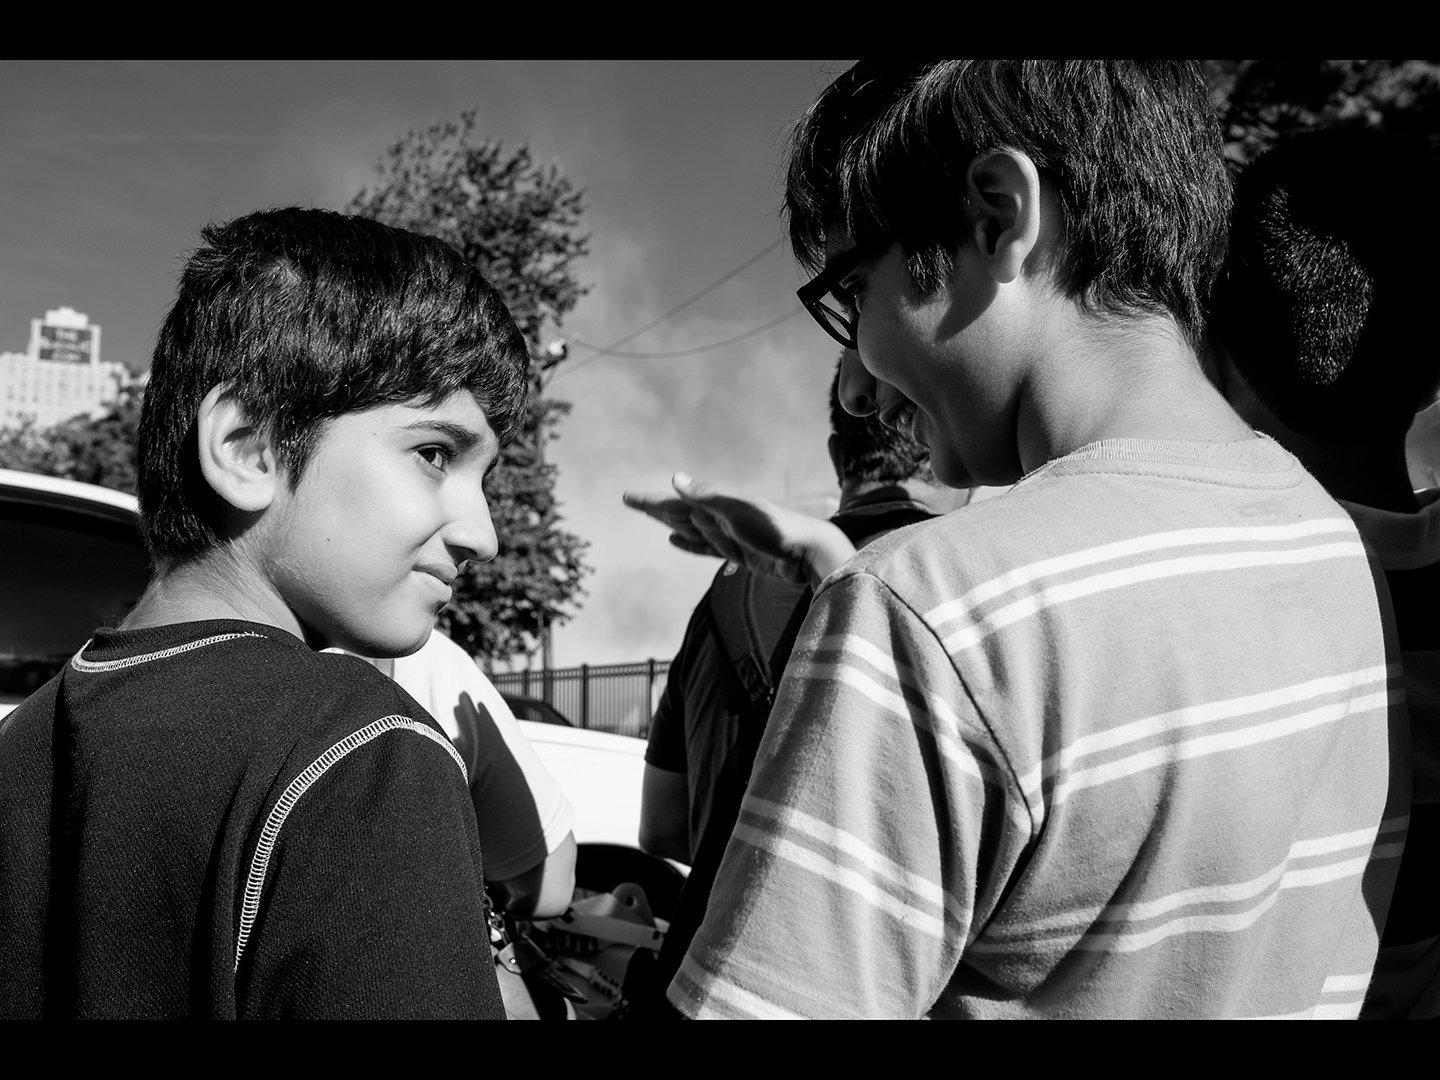 Two Young Boys at the Implosion (Viewbook).jpg